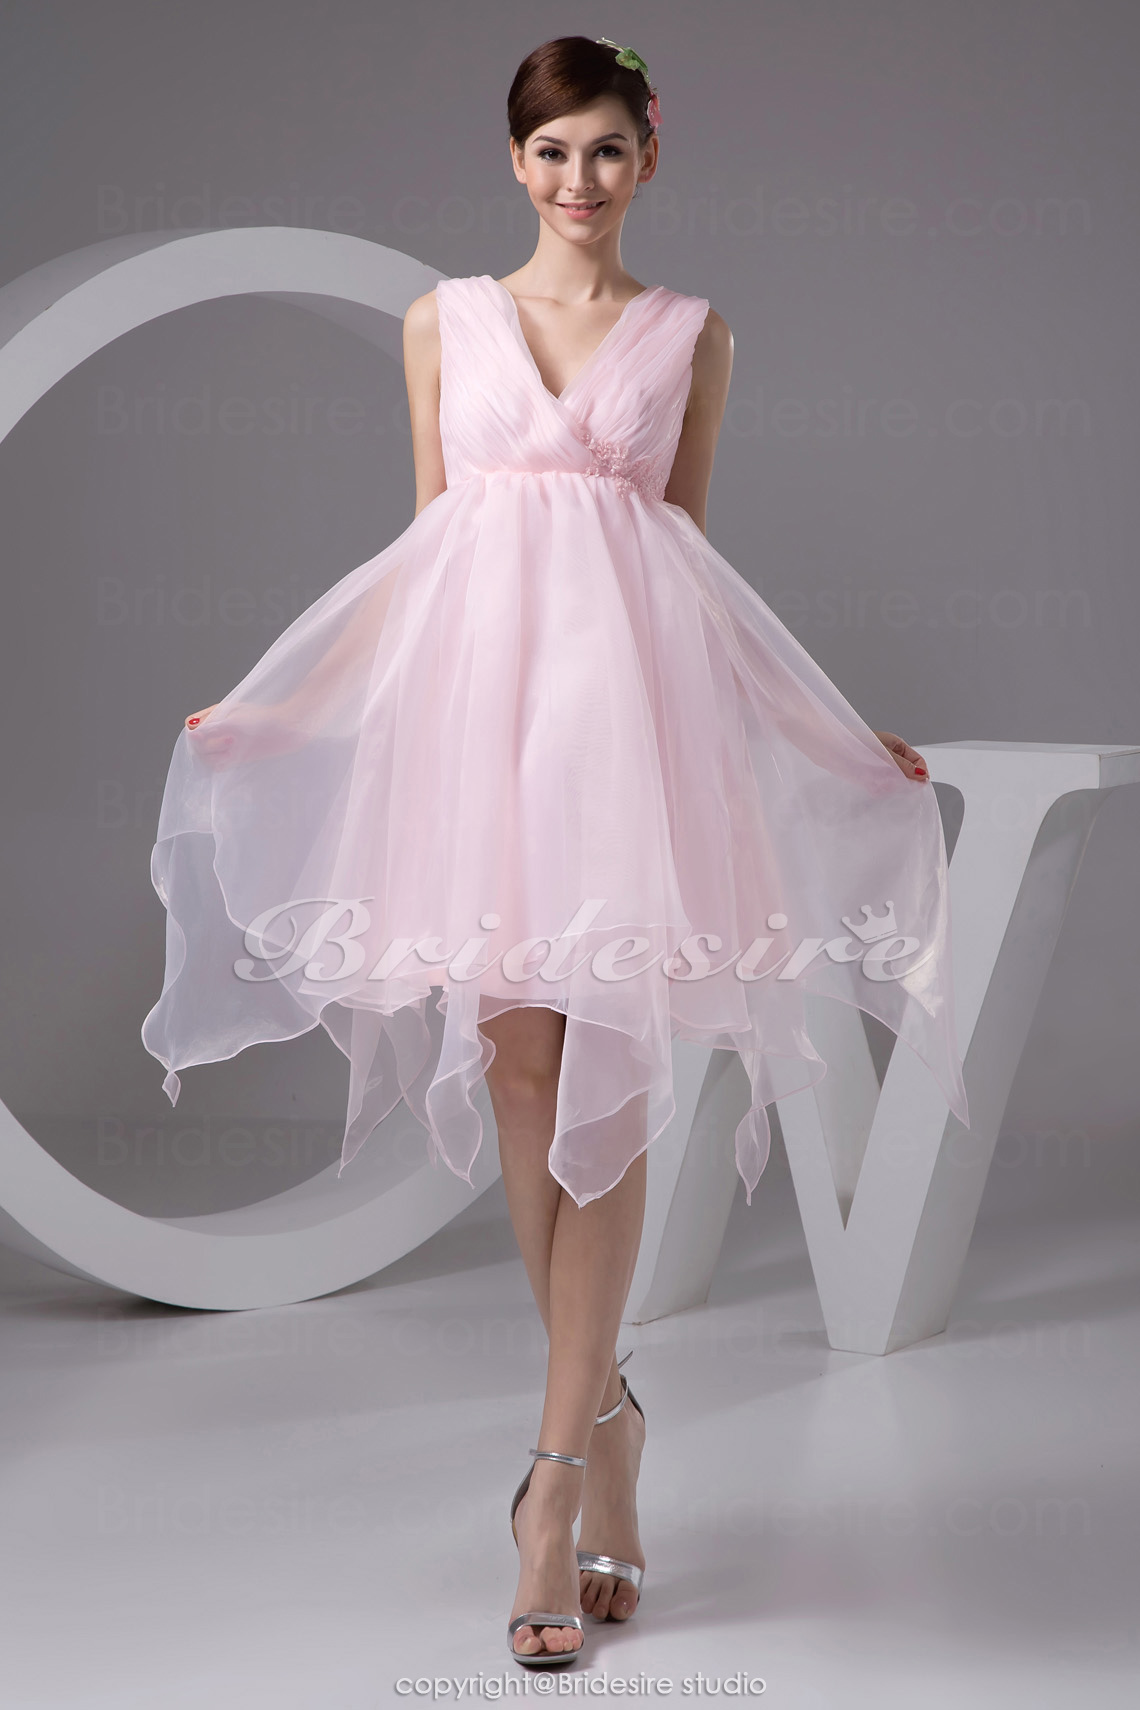 A-line V-neck Tea-length Sleeveless Organza Dress